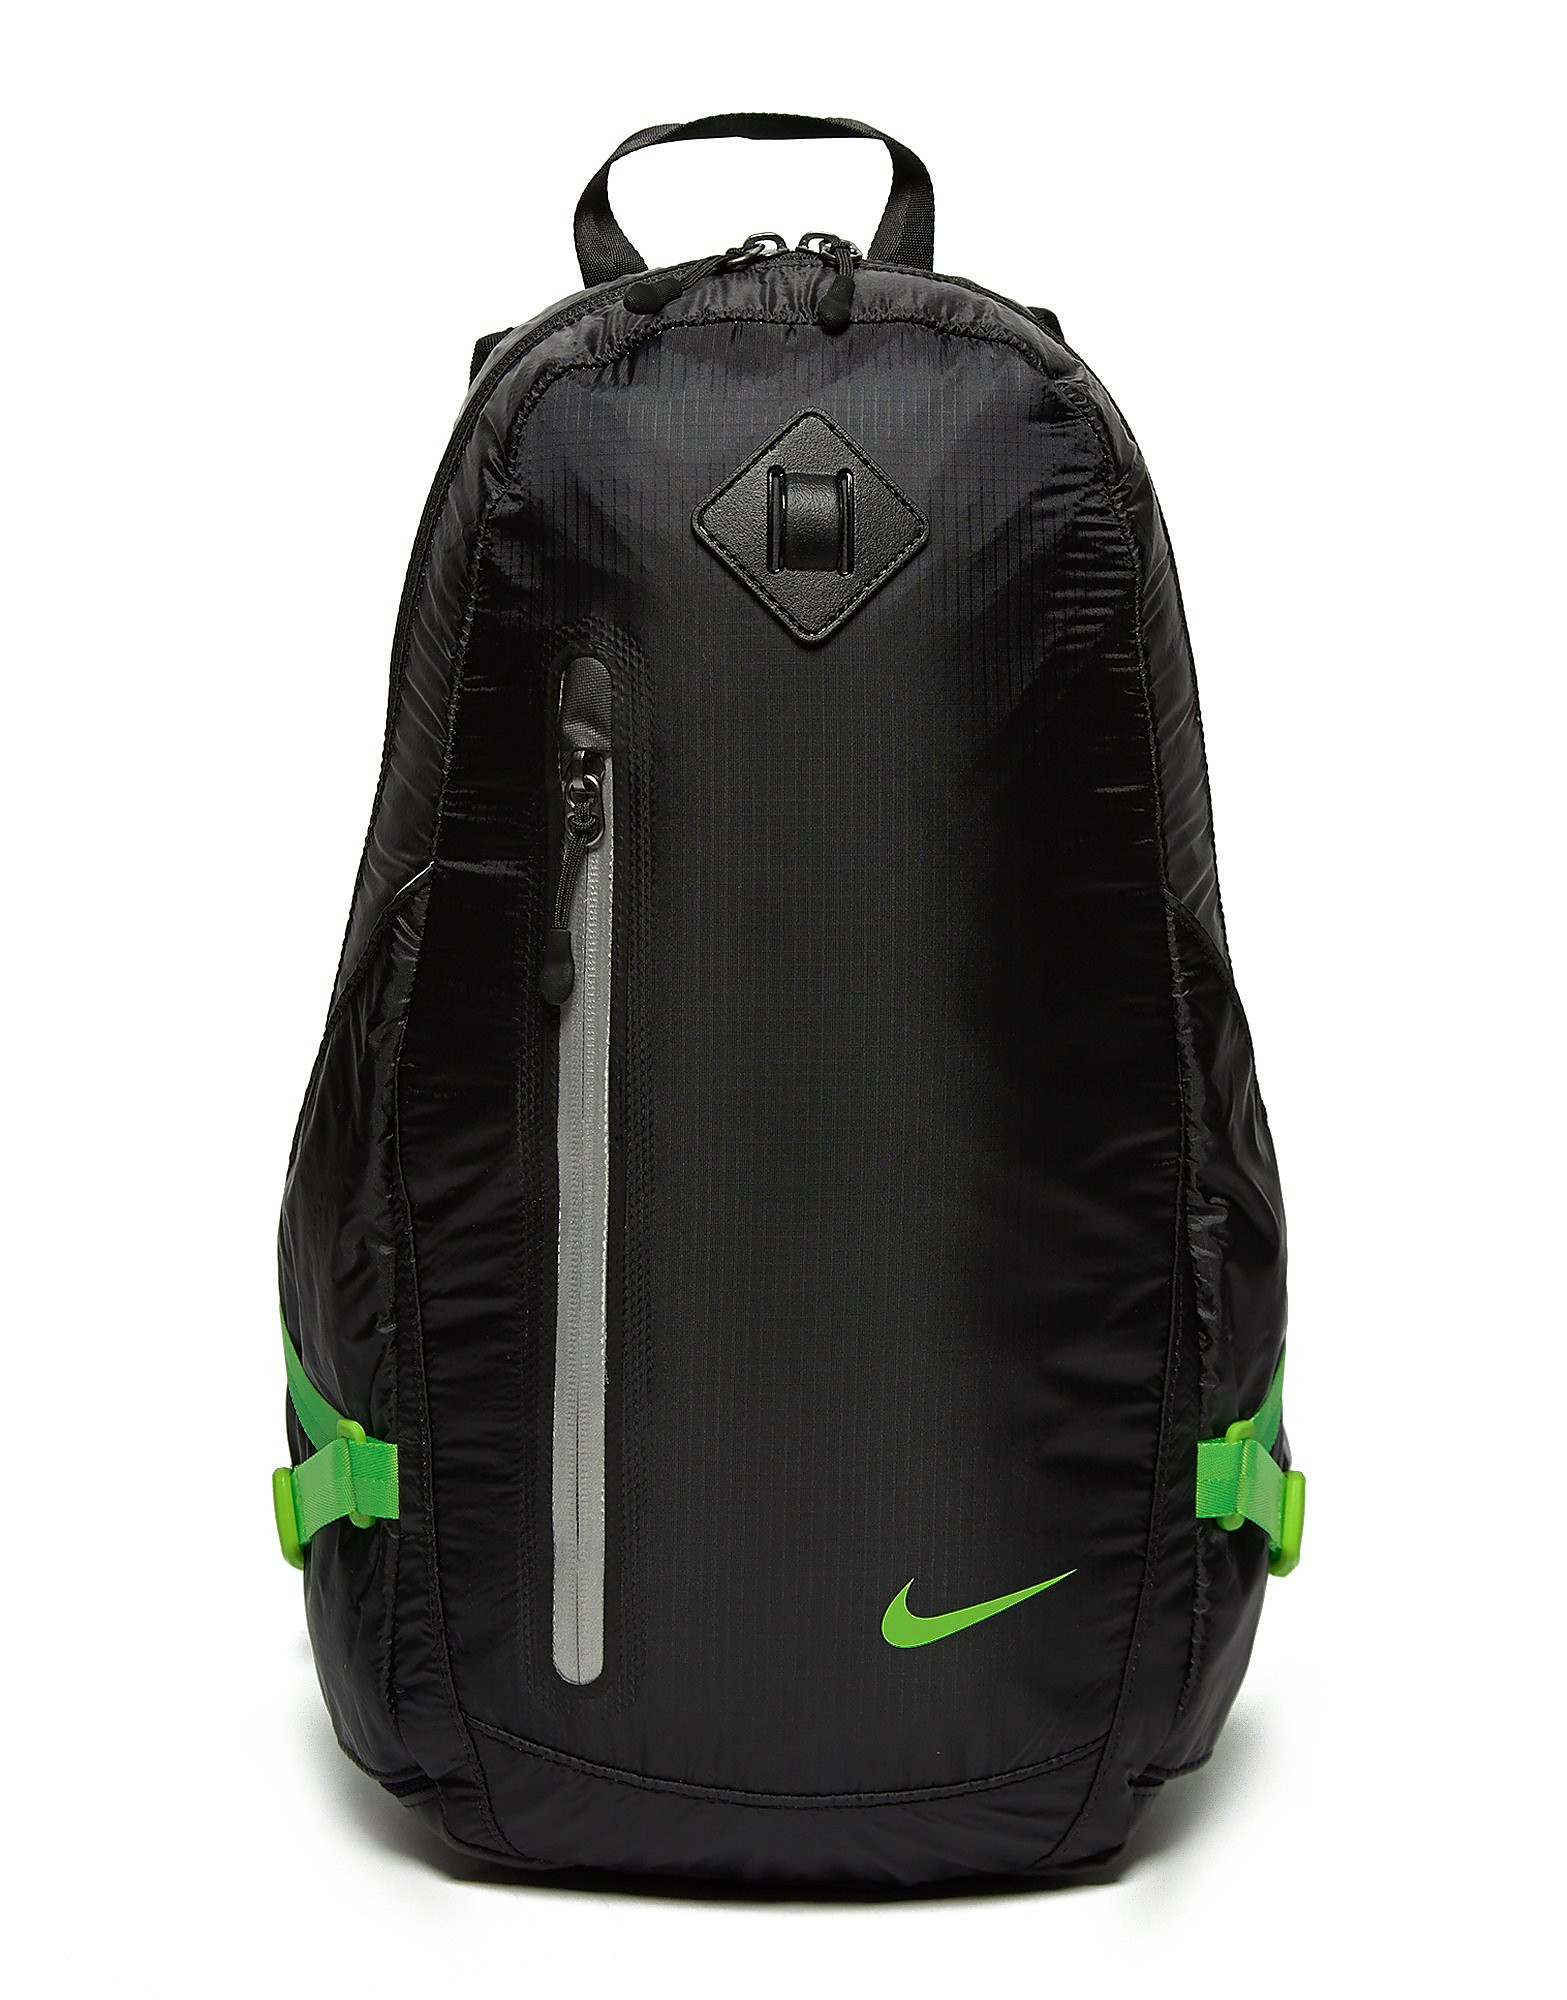 a6f421517 Nike Just Do It Mini Backpack - Black/Grey - Womens - Sports King Store